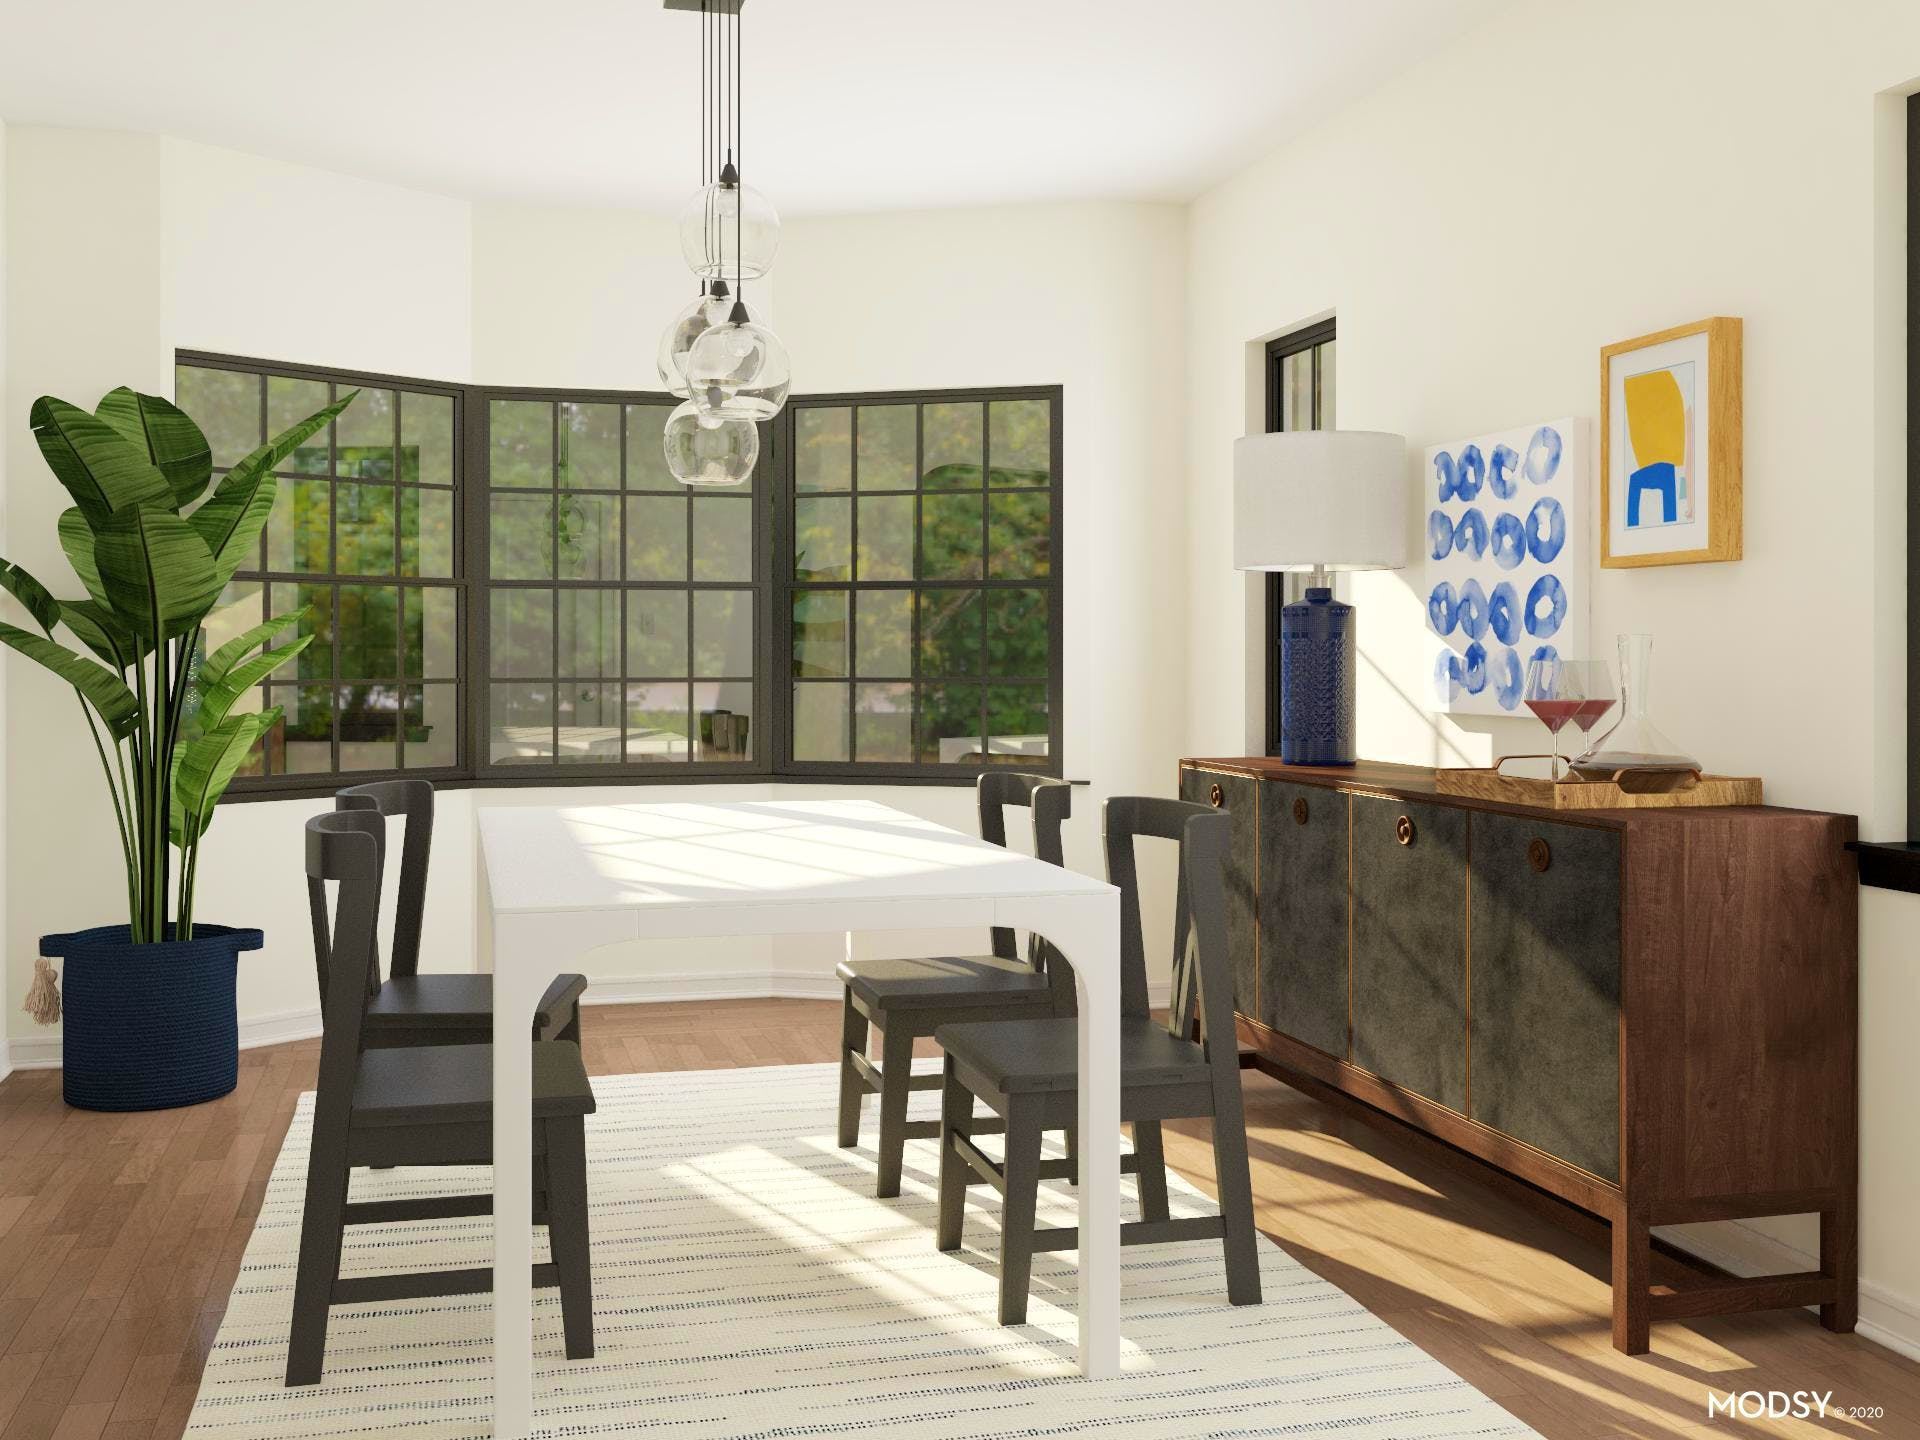 Inviting Contemporary Dining with Transitional Touches